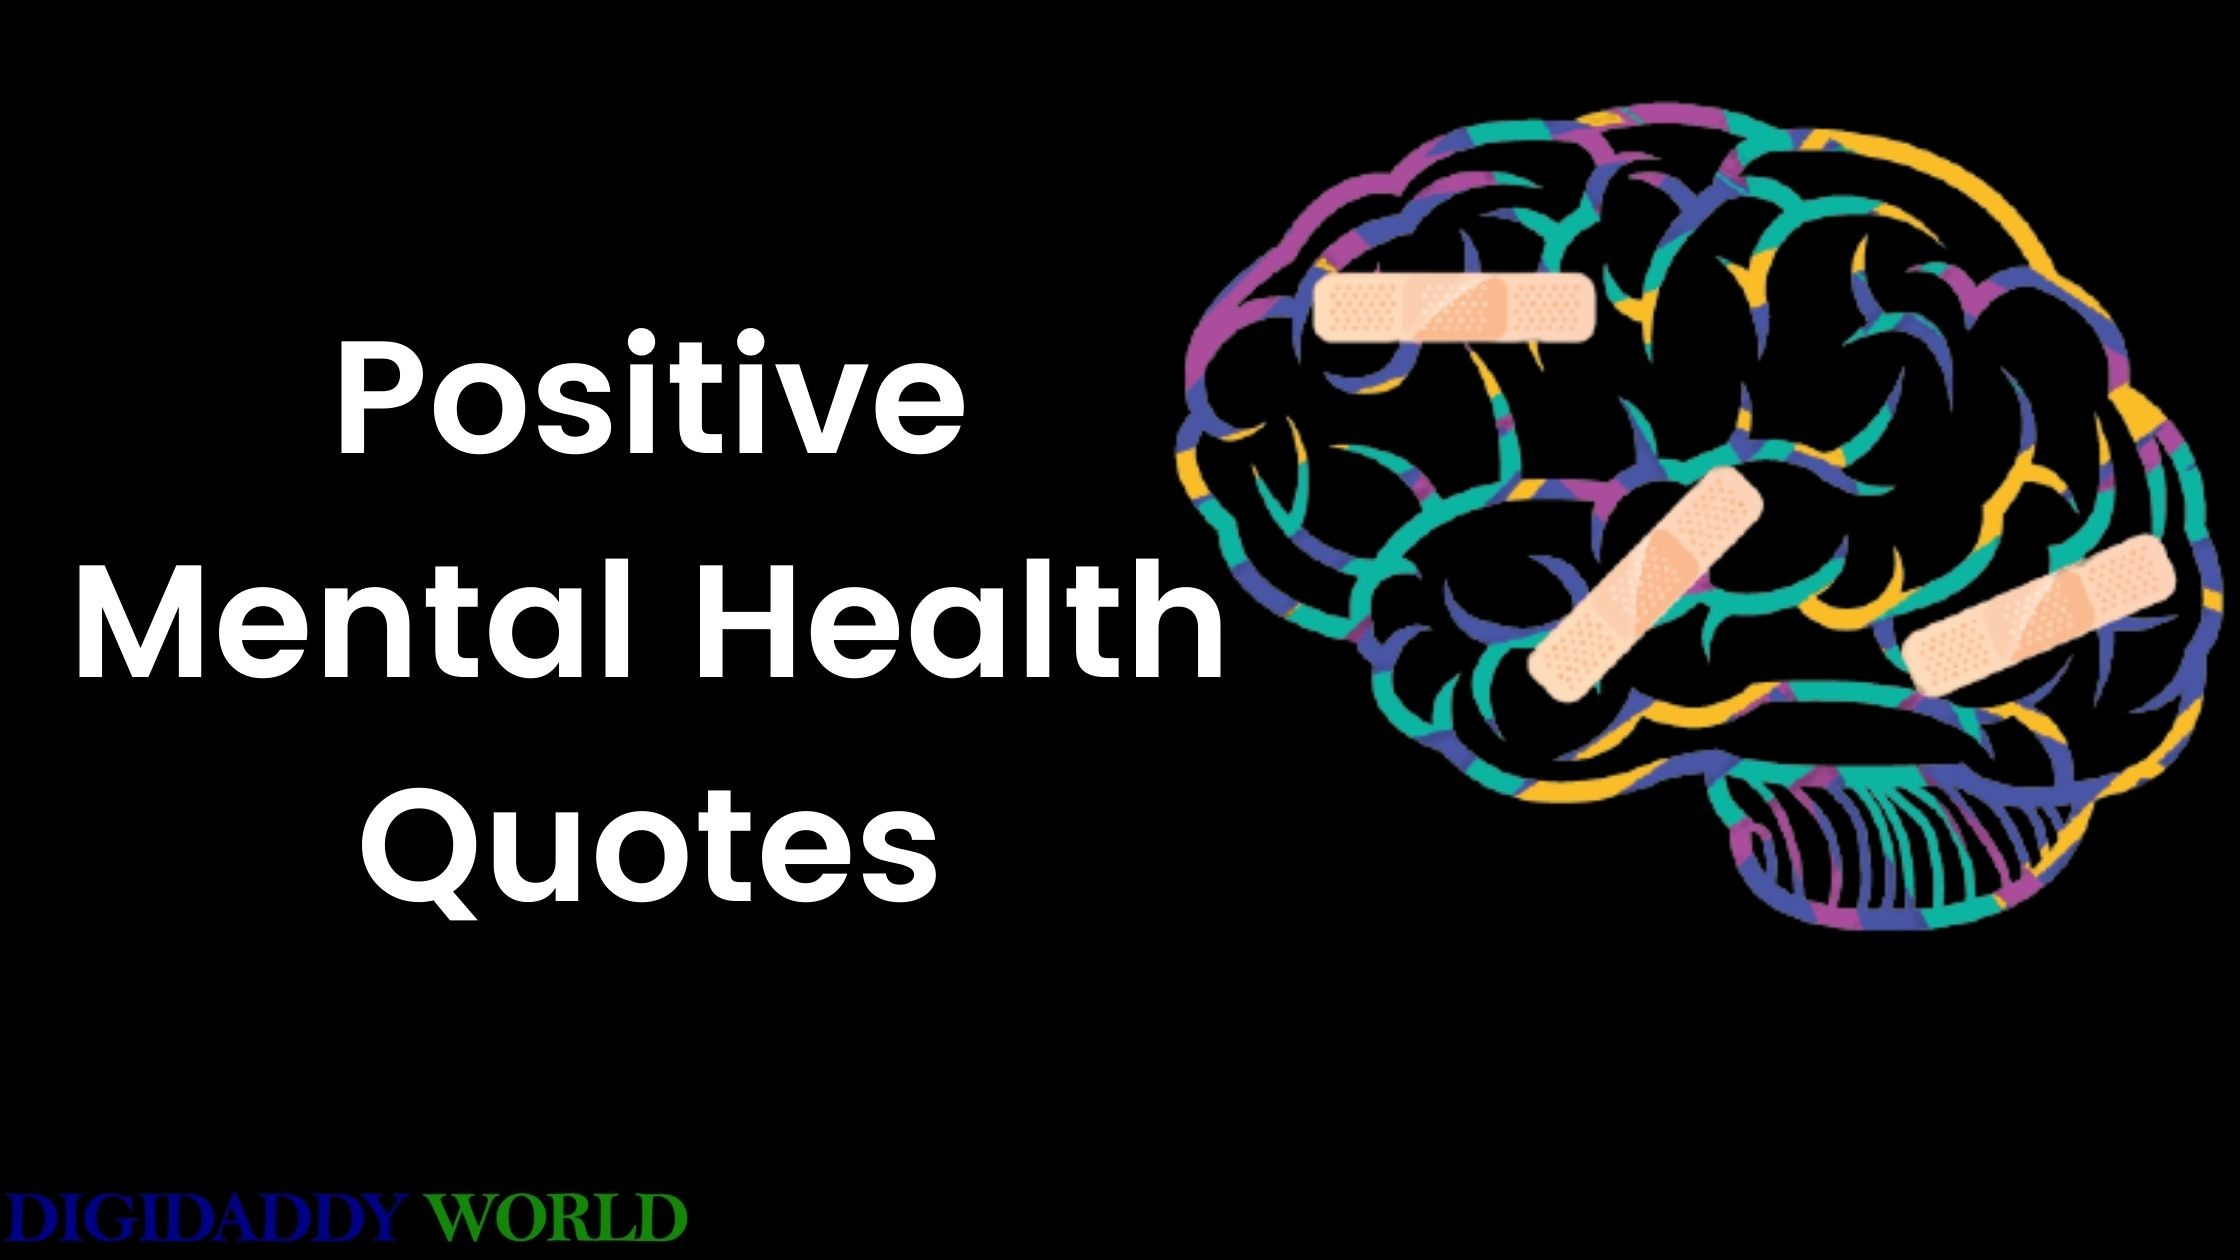 Uplifting Positive Mental Health Quotes